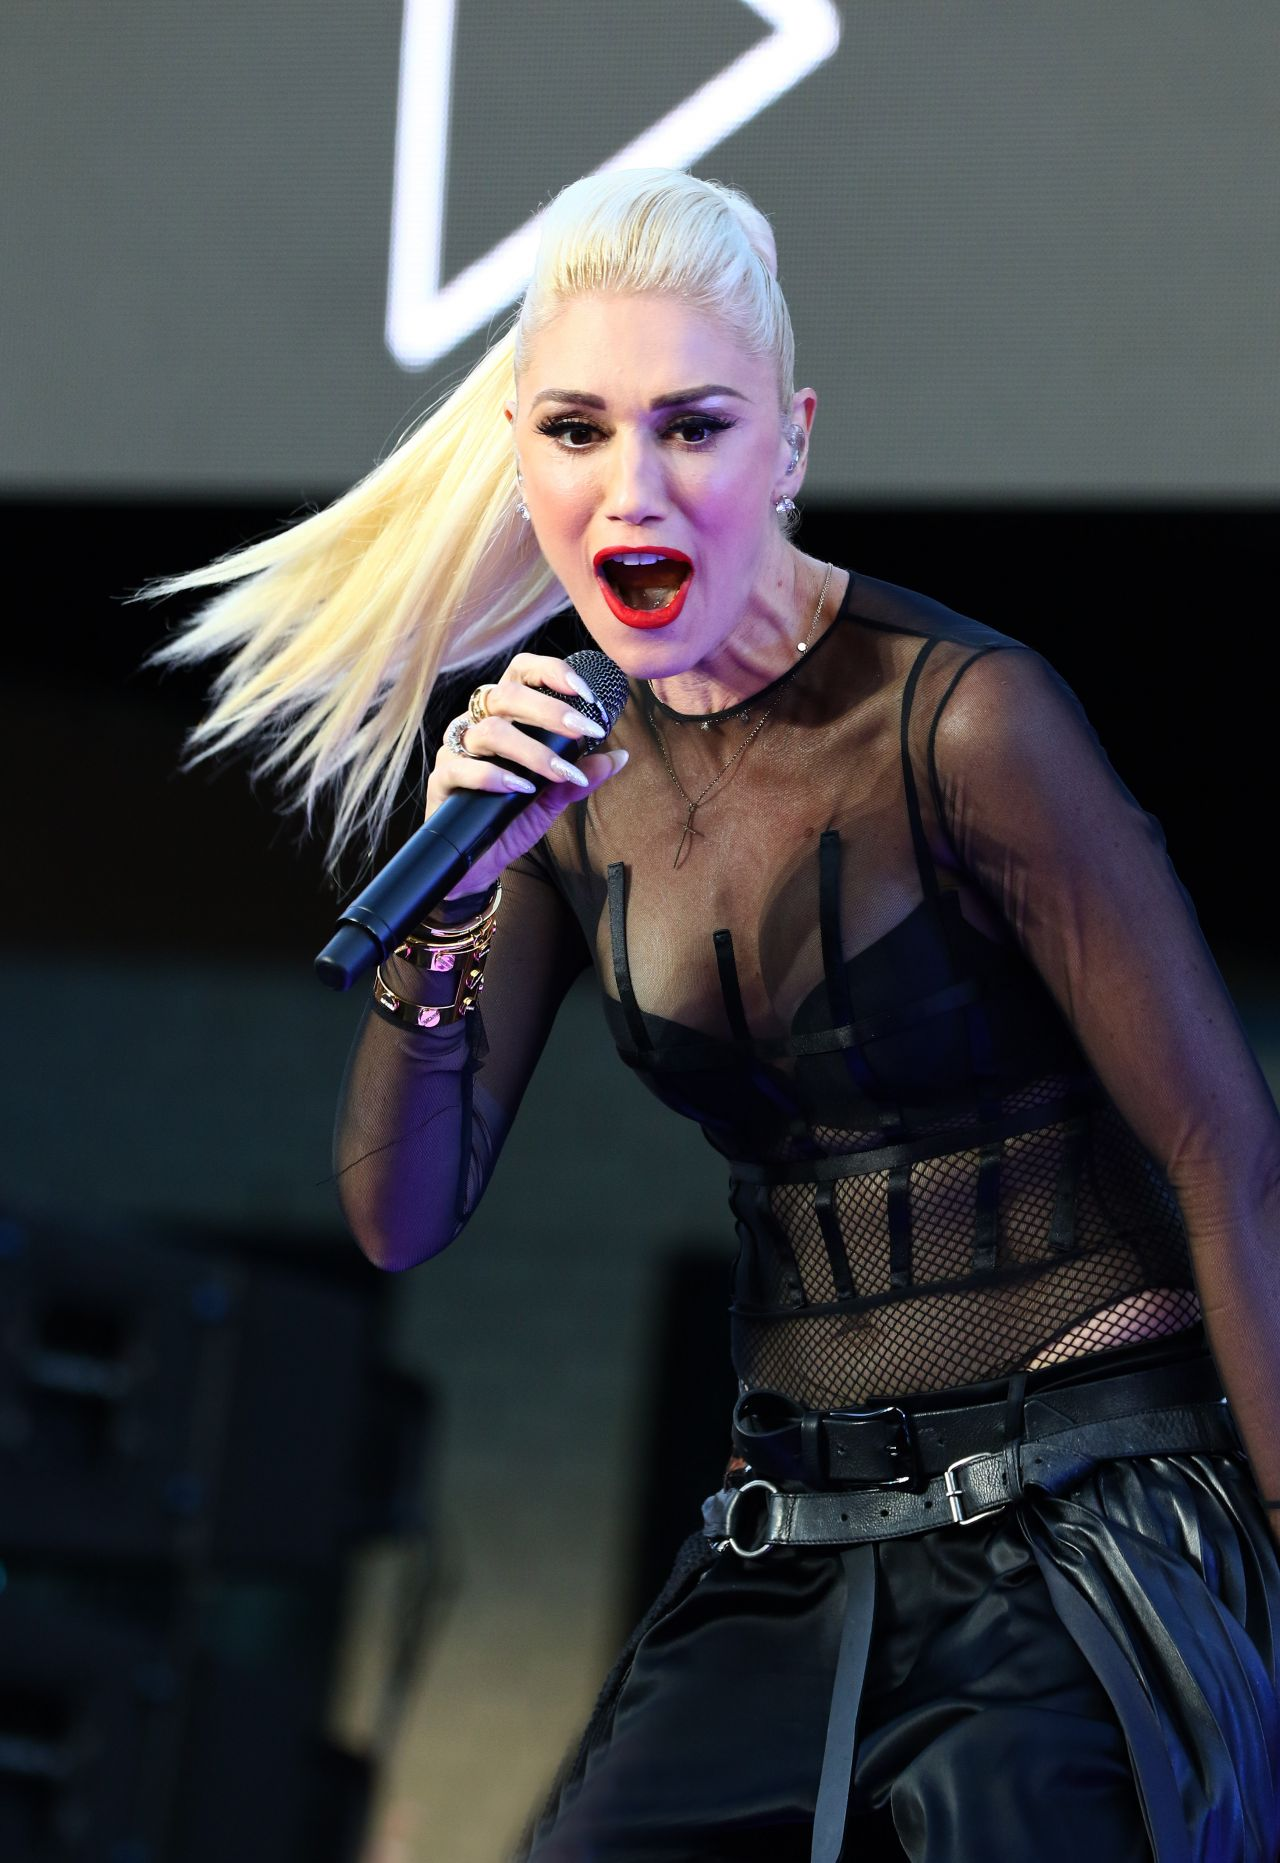 Gwen Stefani Performs A Free Concert At Samsung 837 New